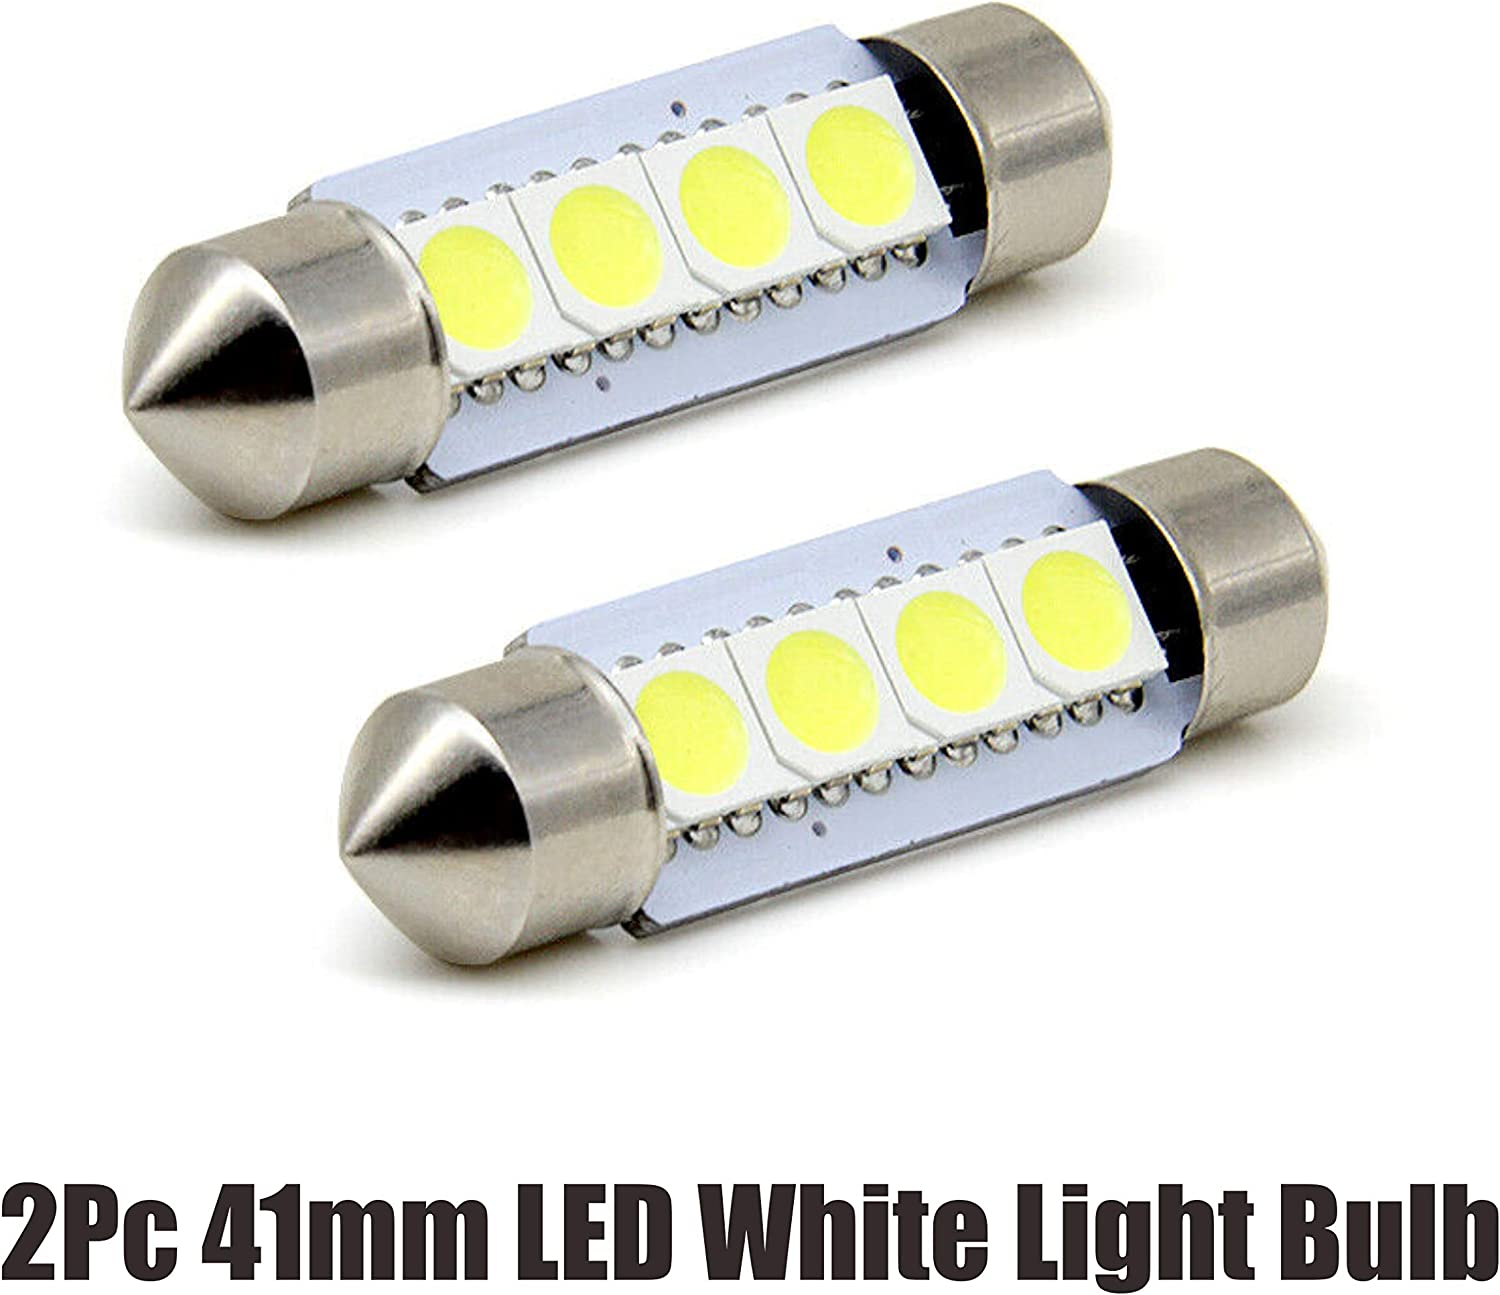 2Pcs Super Genuine White 41mm 4SMD 5050 Indianapolis Mall Light Car LED for bulbs License